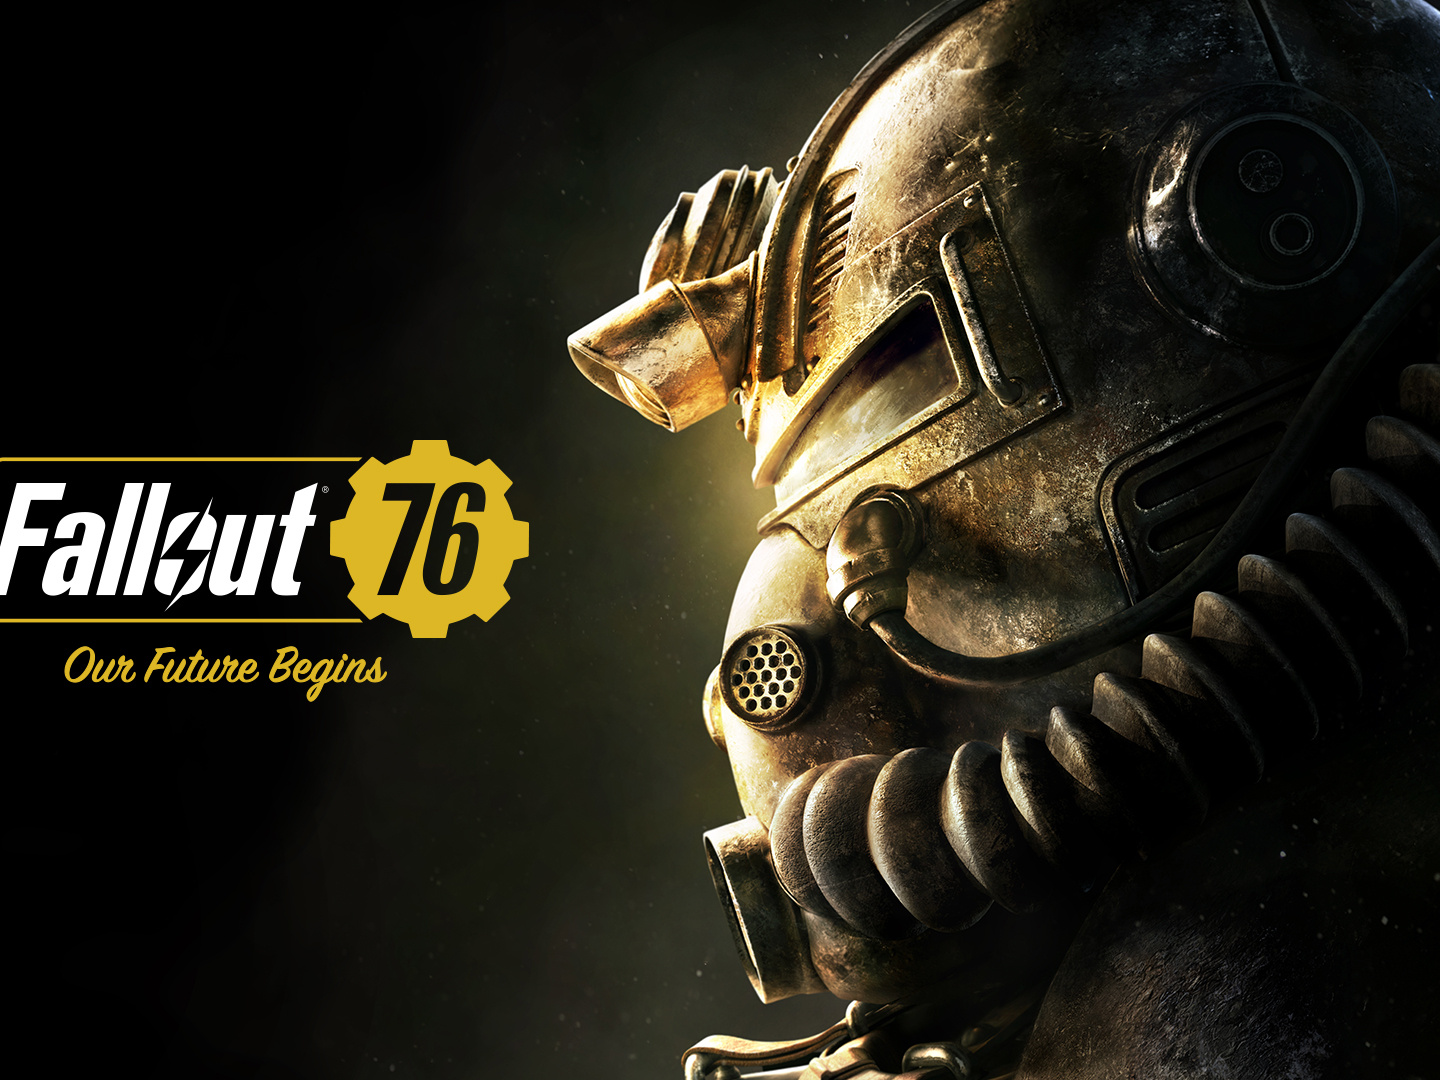 Fallout 76 — Our Future Begins Campaign Thumbnail